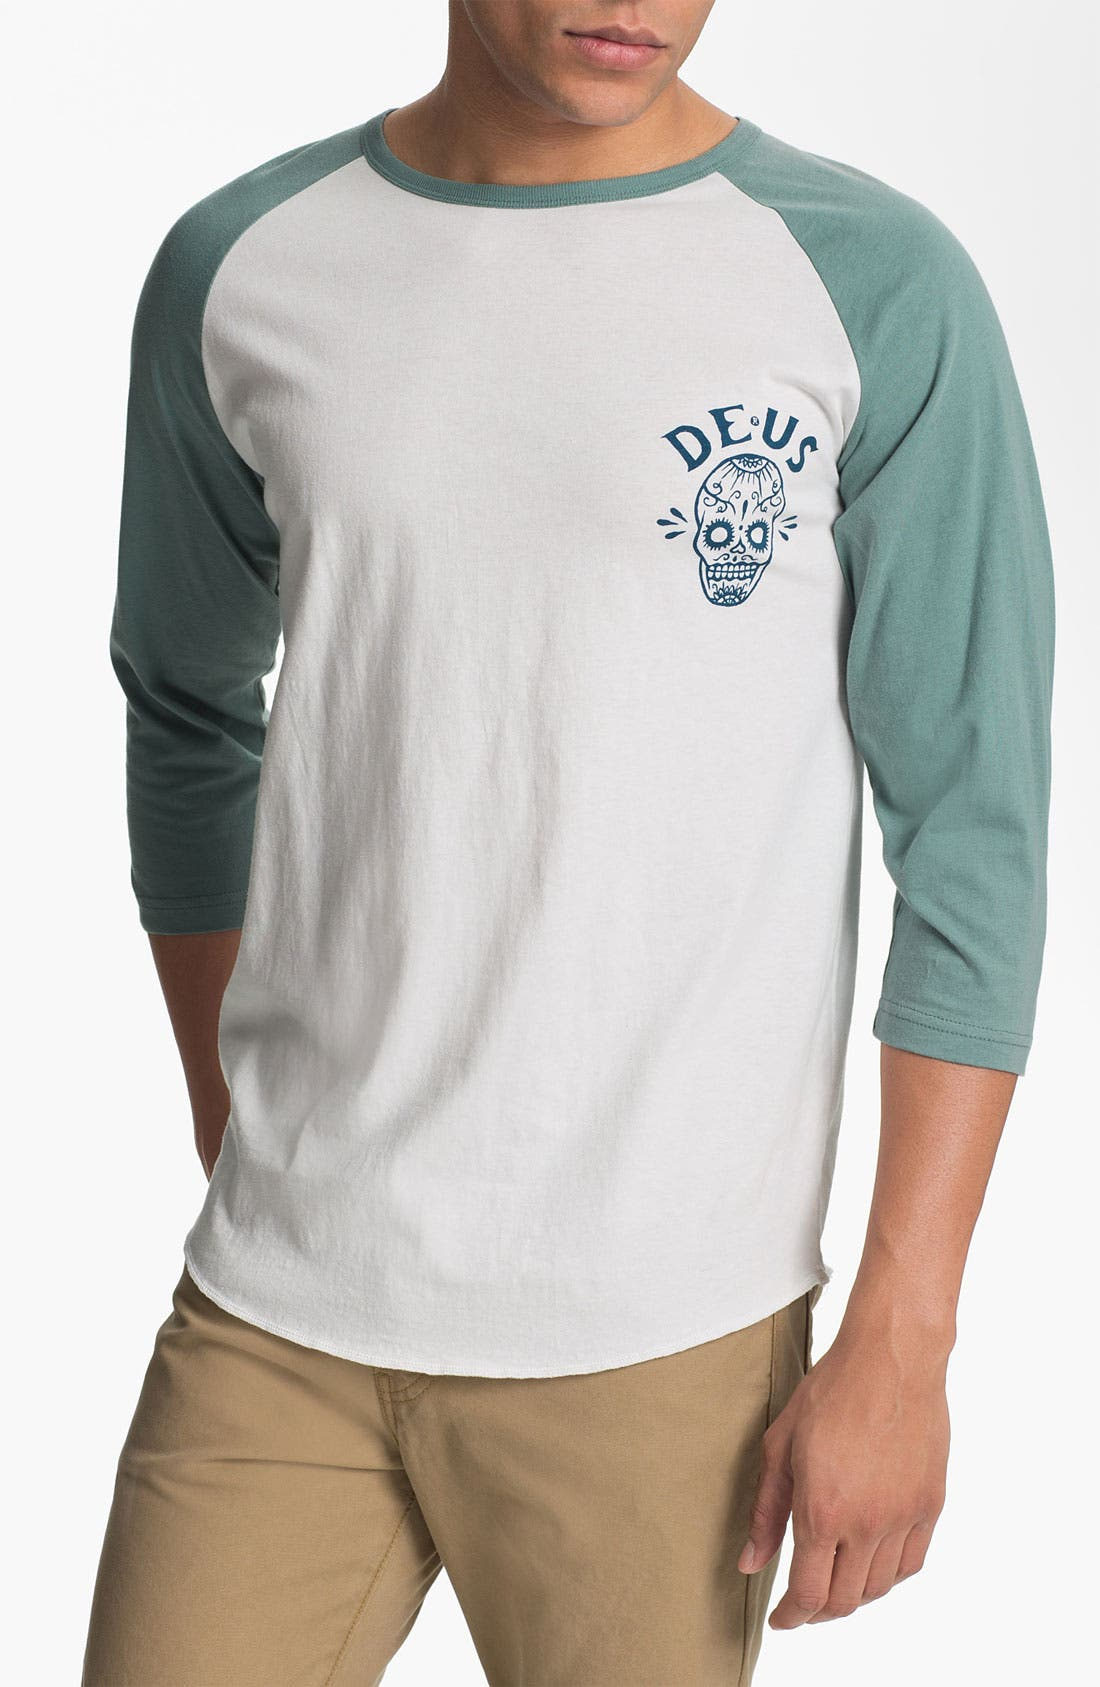 Main Image - Deus Ex Machina 'Deus of the Dead' Graphic Baseball T-Shirt